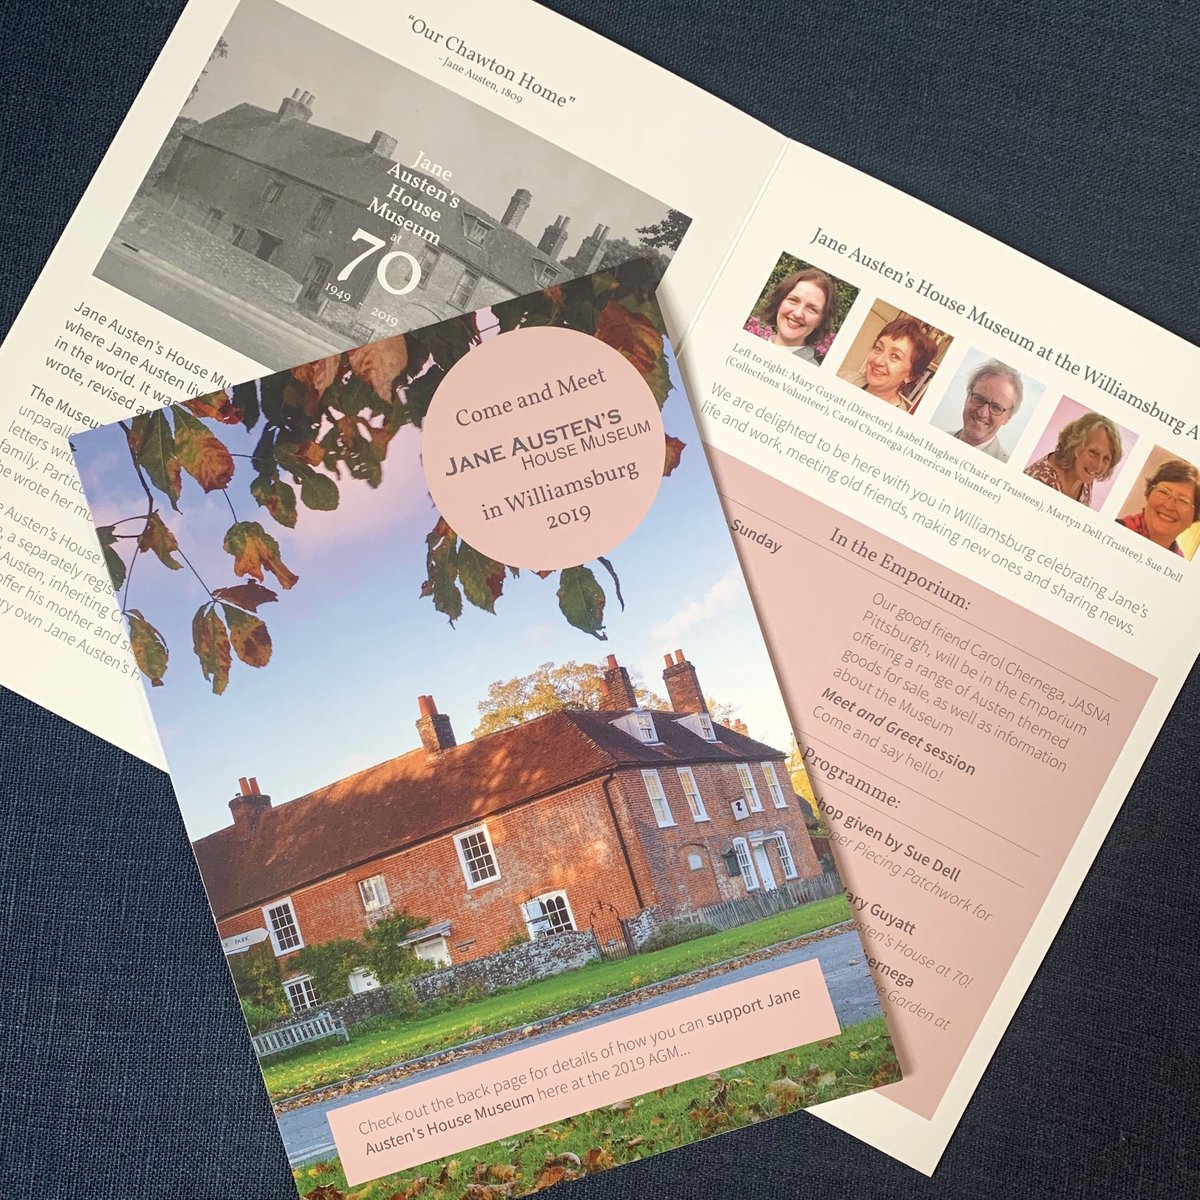 Happy #JASNAAGM2019 to all attendees! Were delighted to be here with you in Williamsburg this year. Look out for your guide to Jane Austens House Museum at the AGM, included in your delegate packs. Come and say hi! 👋 🎩